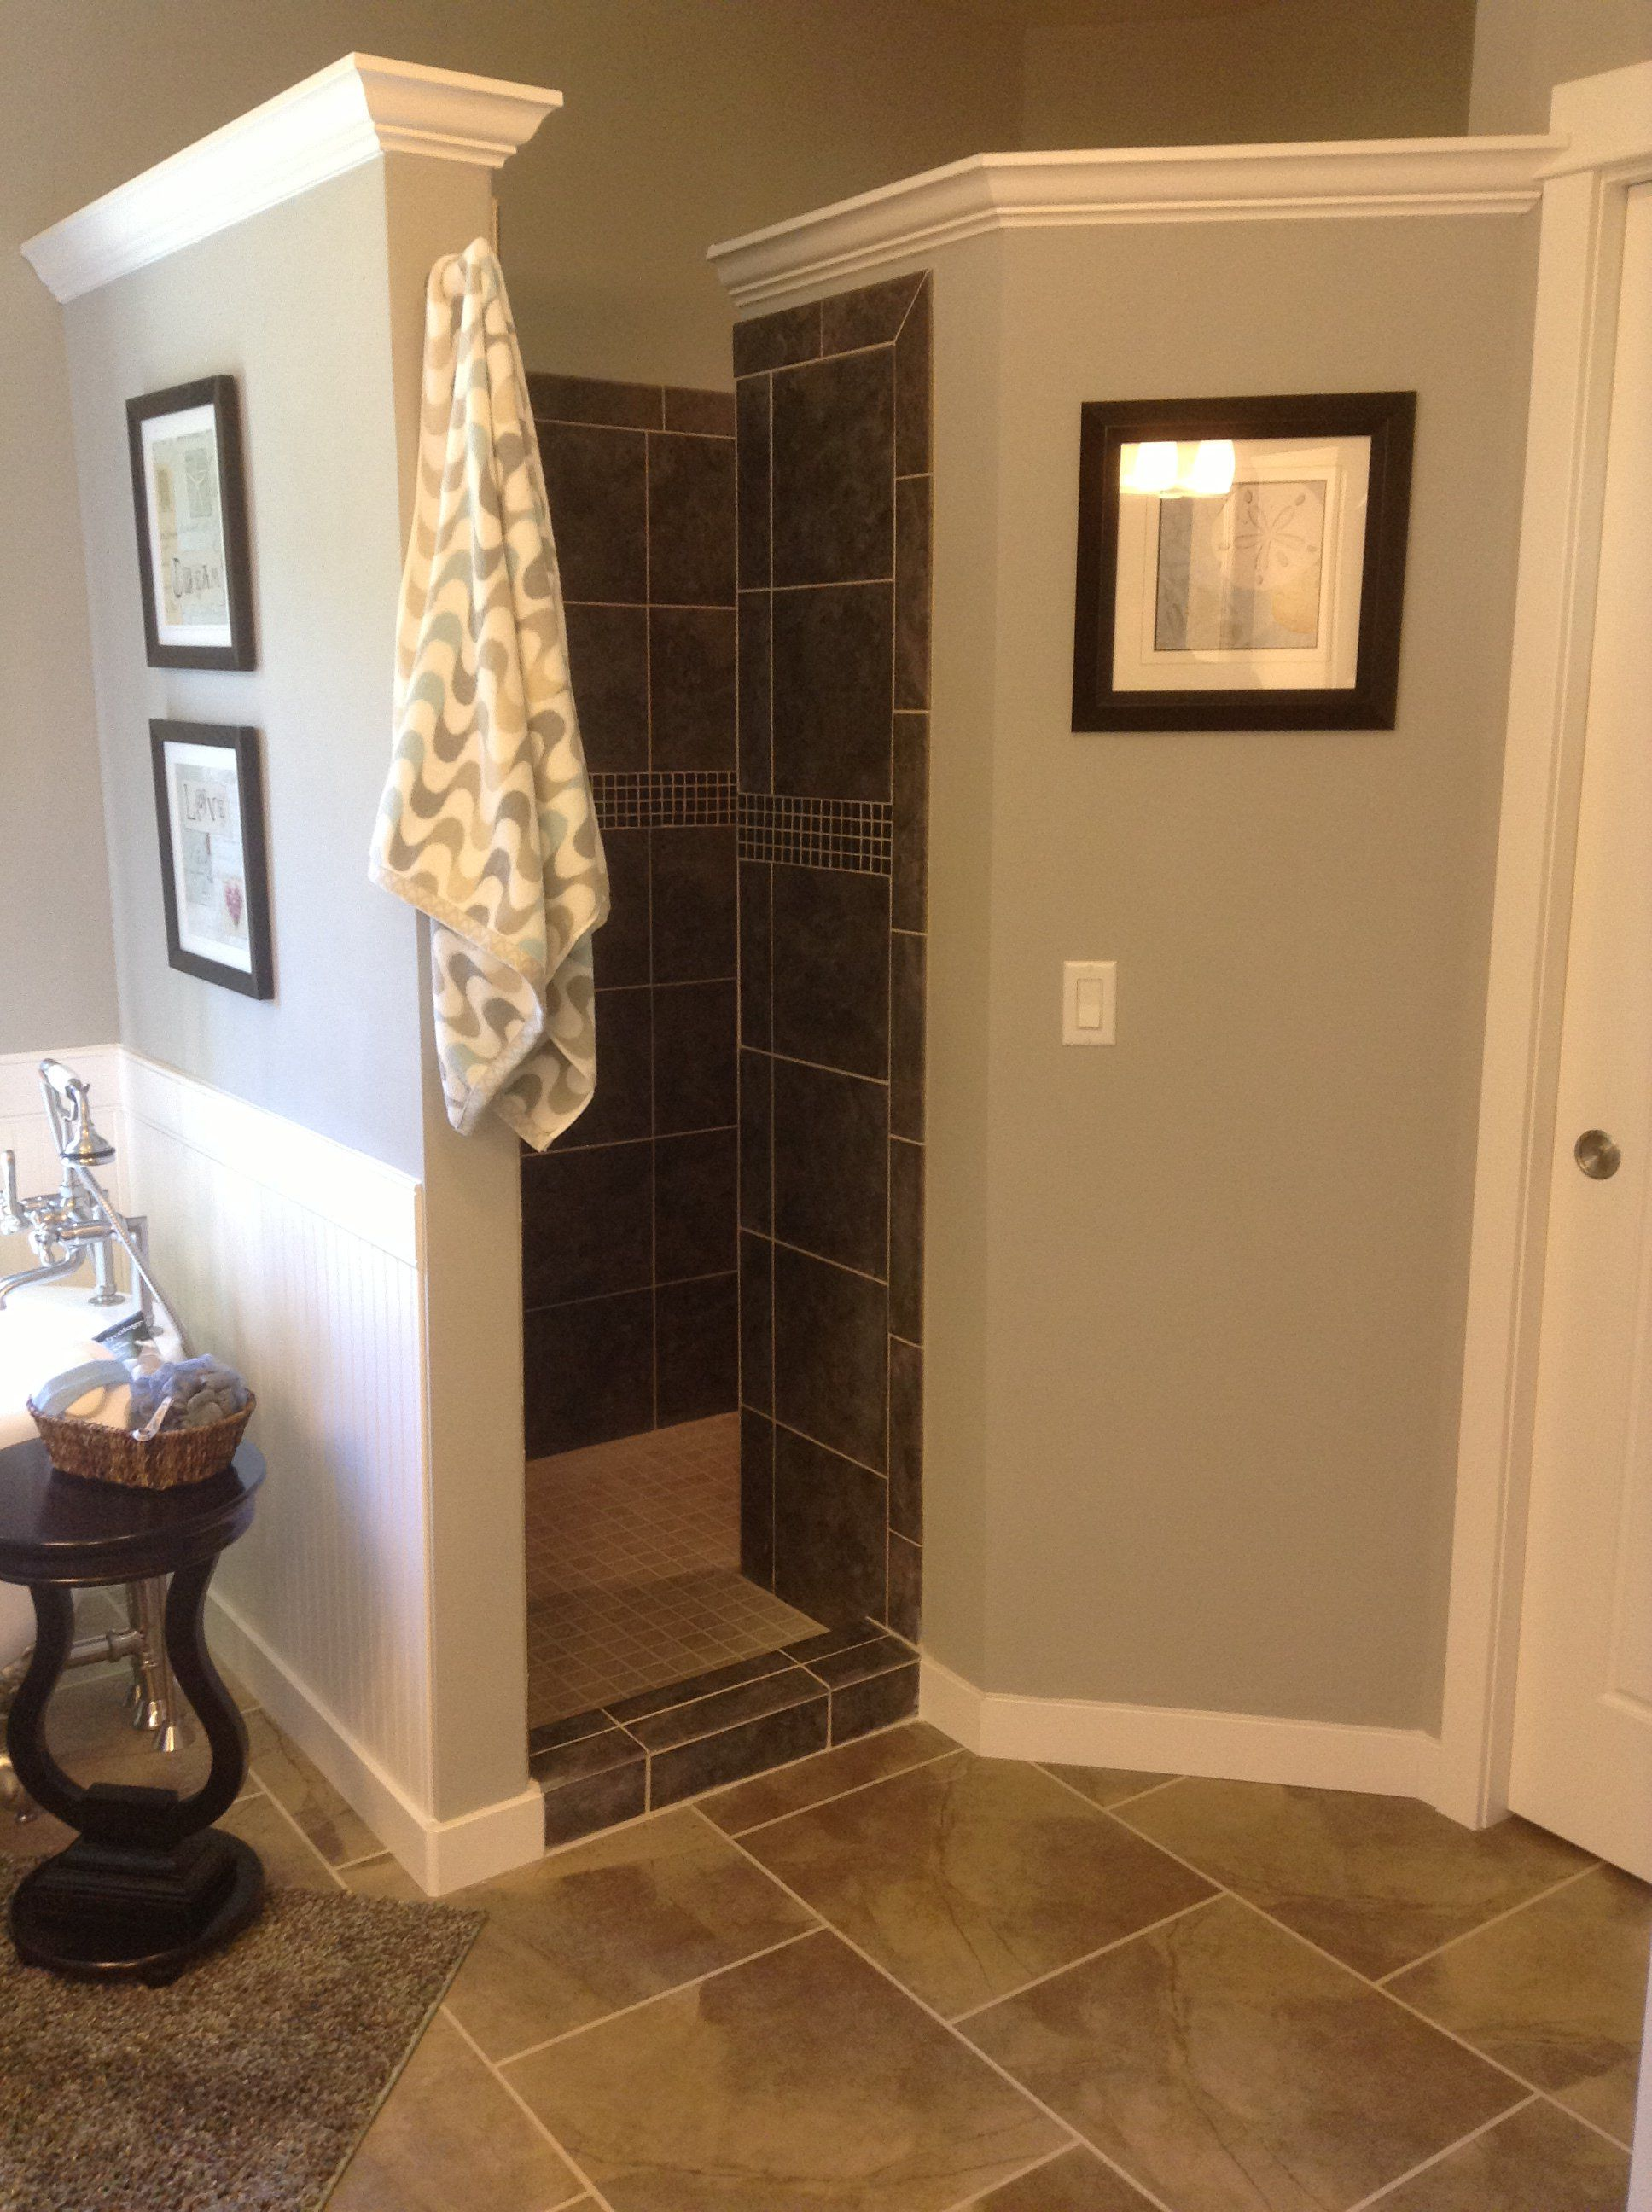 Walk in shower no door to clean so practical 210 for Master bathroom no door